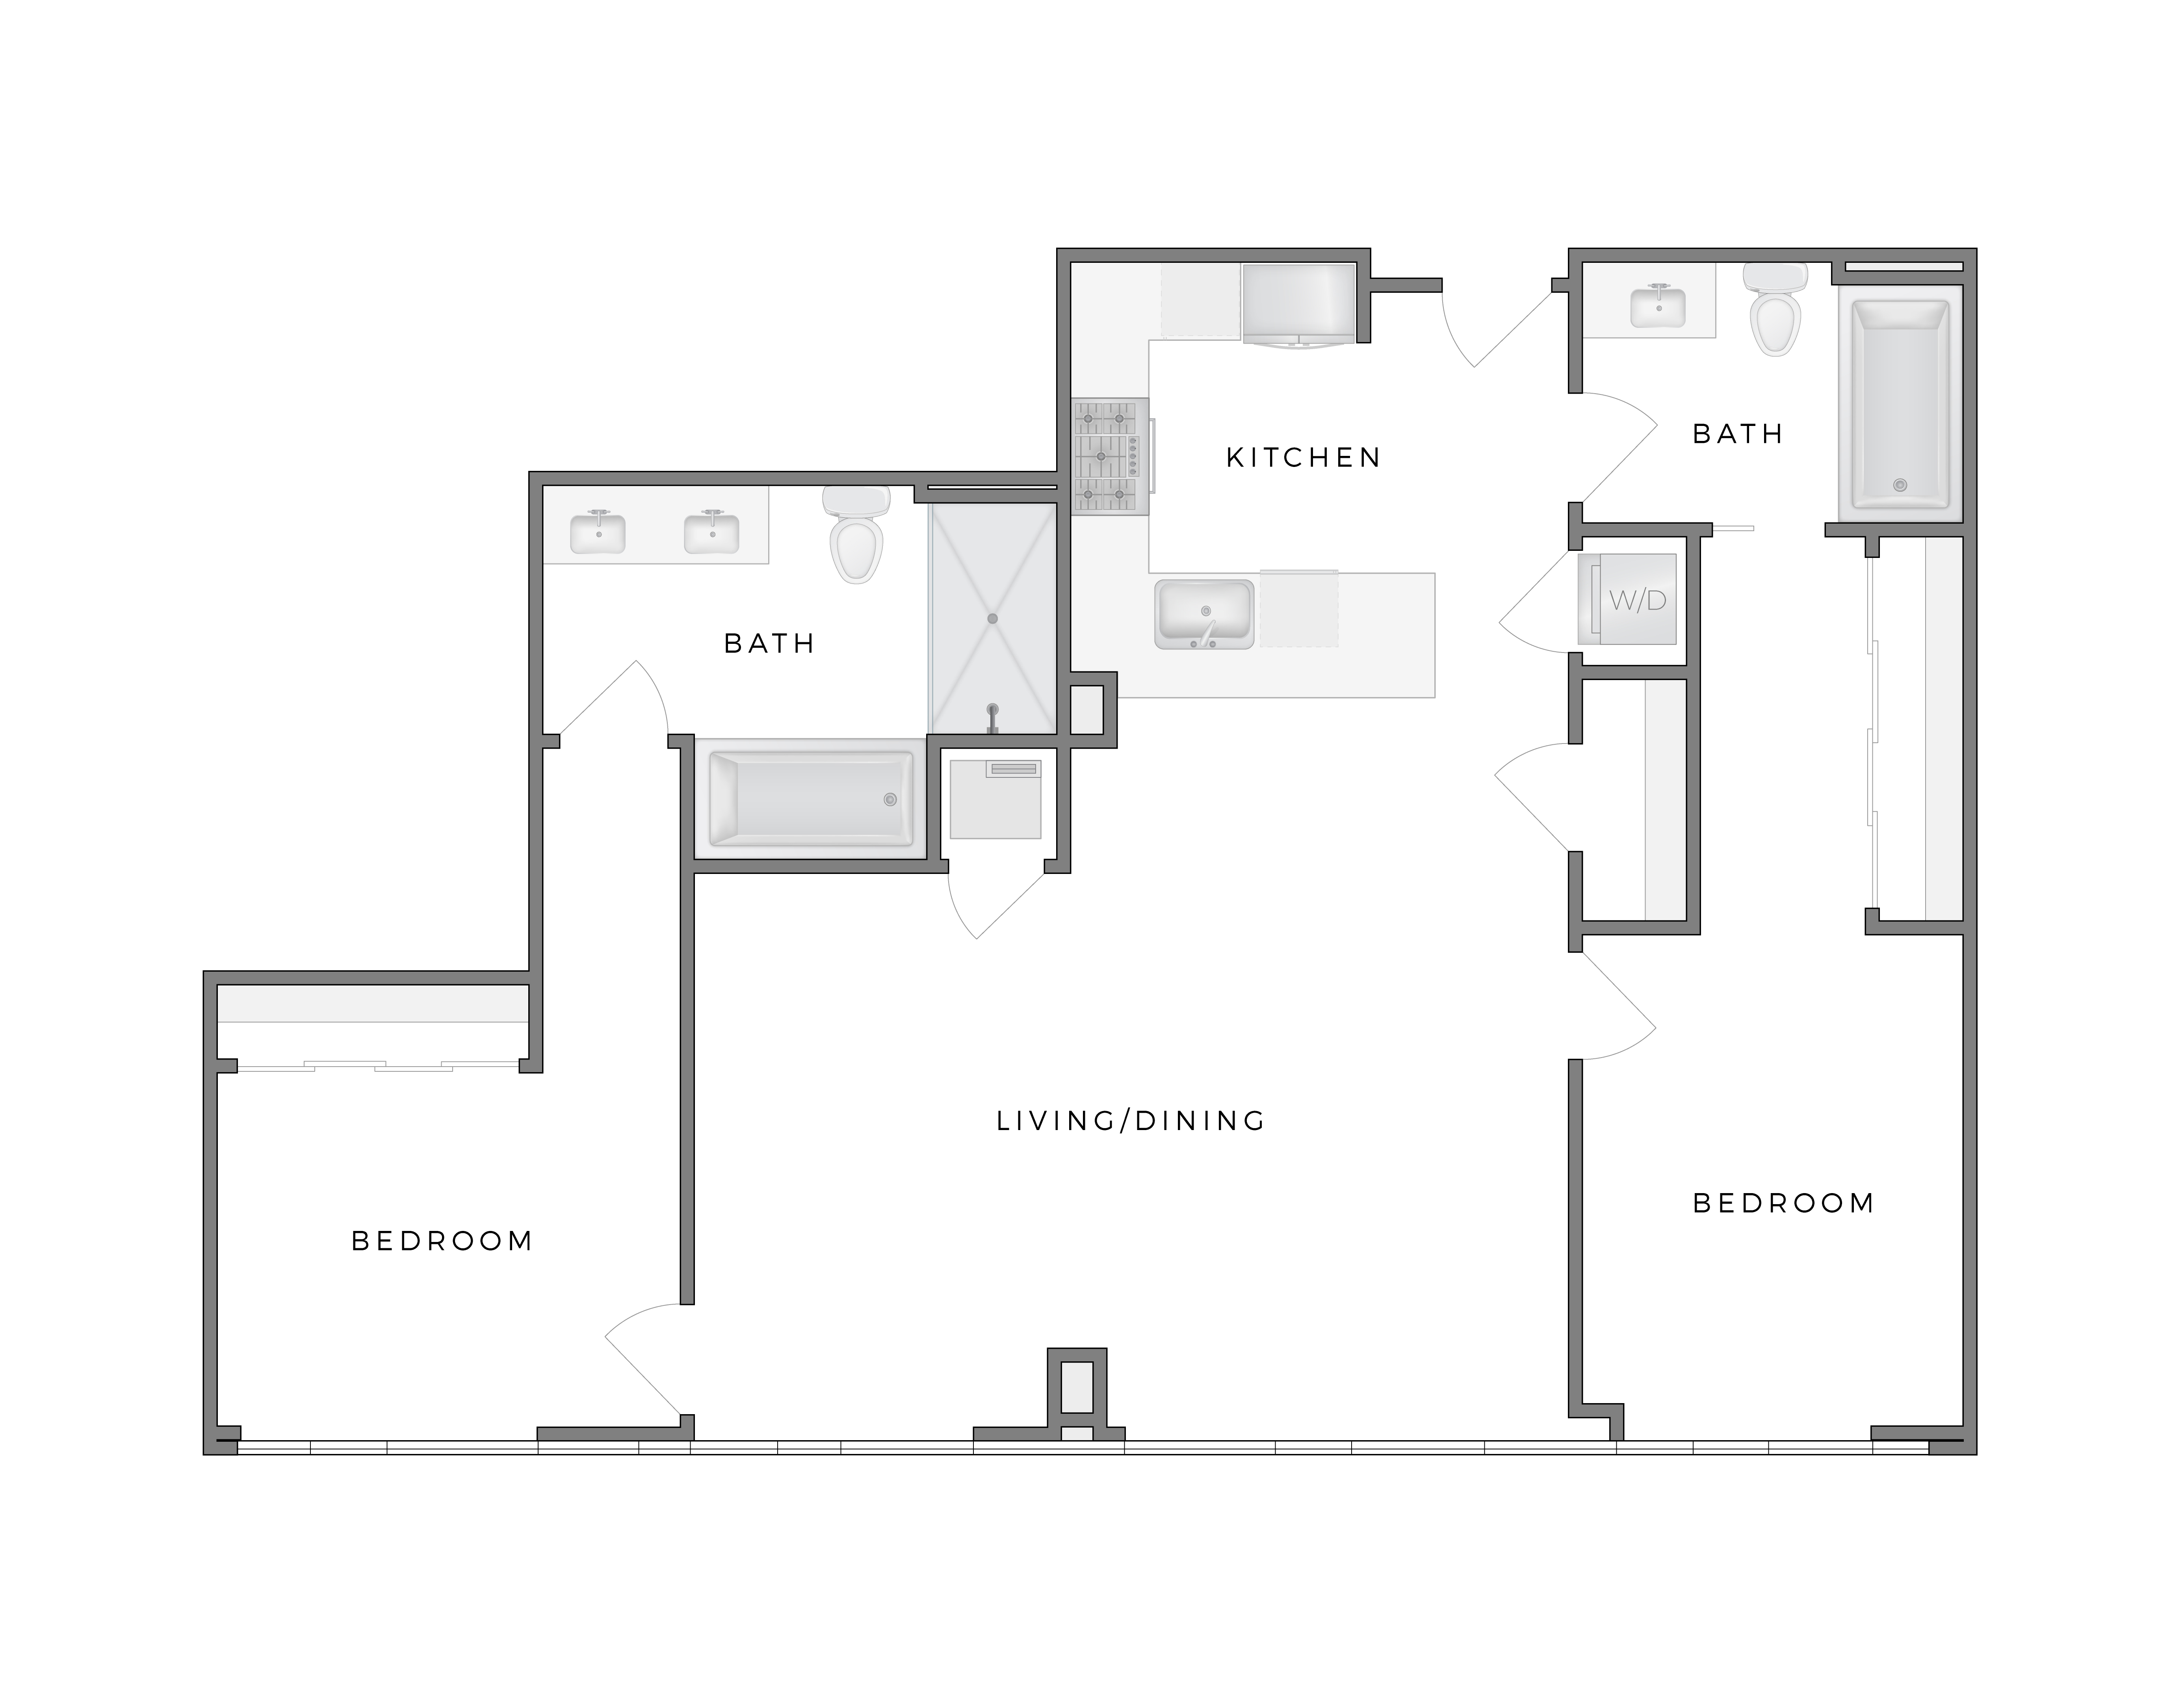 Atelier Warhol 5 apartment floorplan diagram with two bedrooms, two bathrooms, kitchen, and living dining area